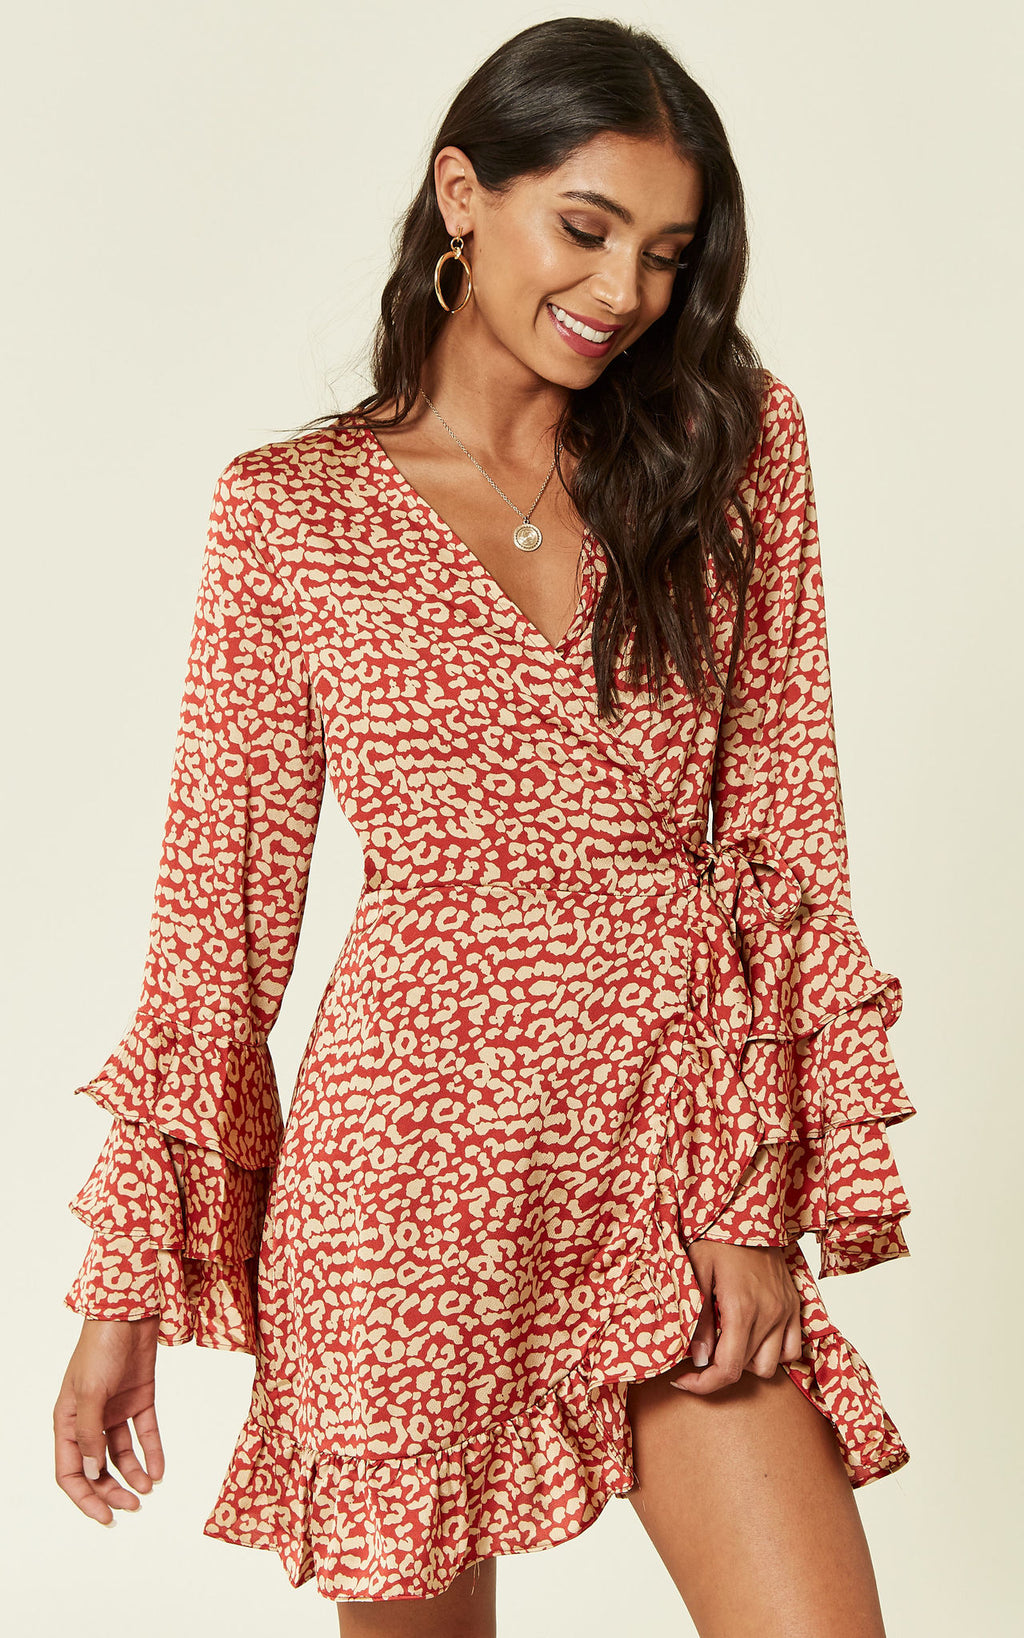 Triple Ruffle Silky Rust Leopard Wrap Dress